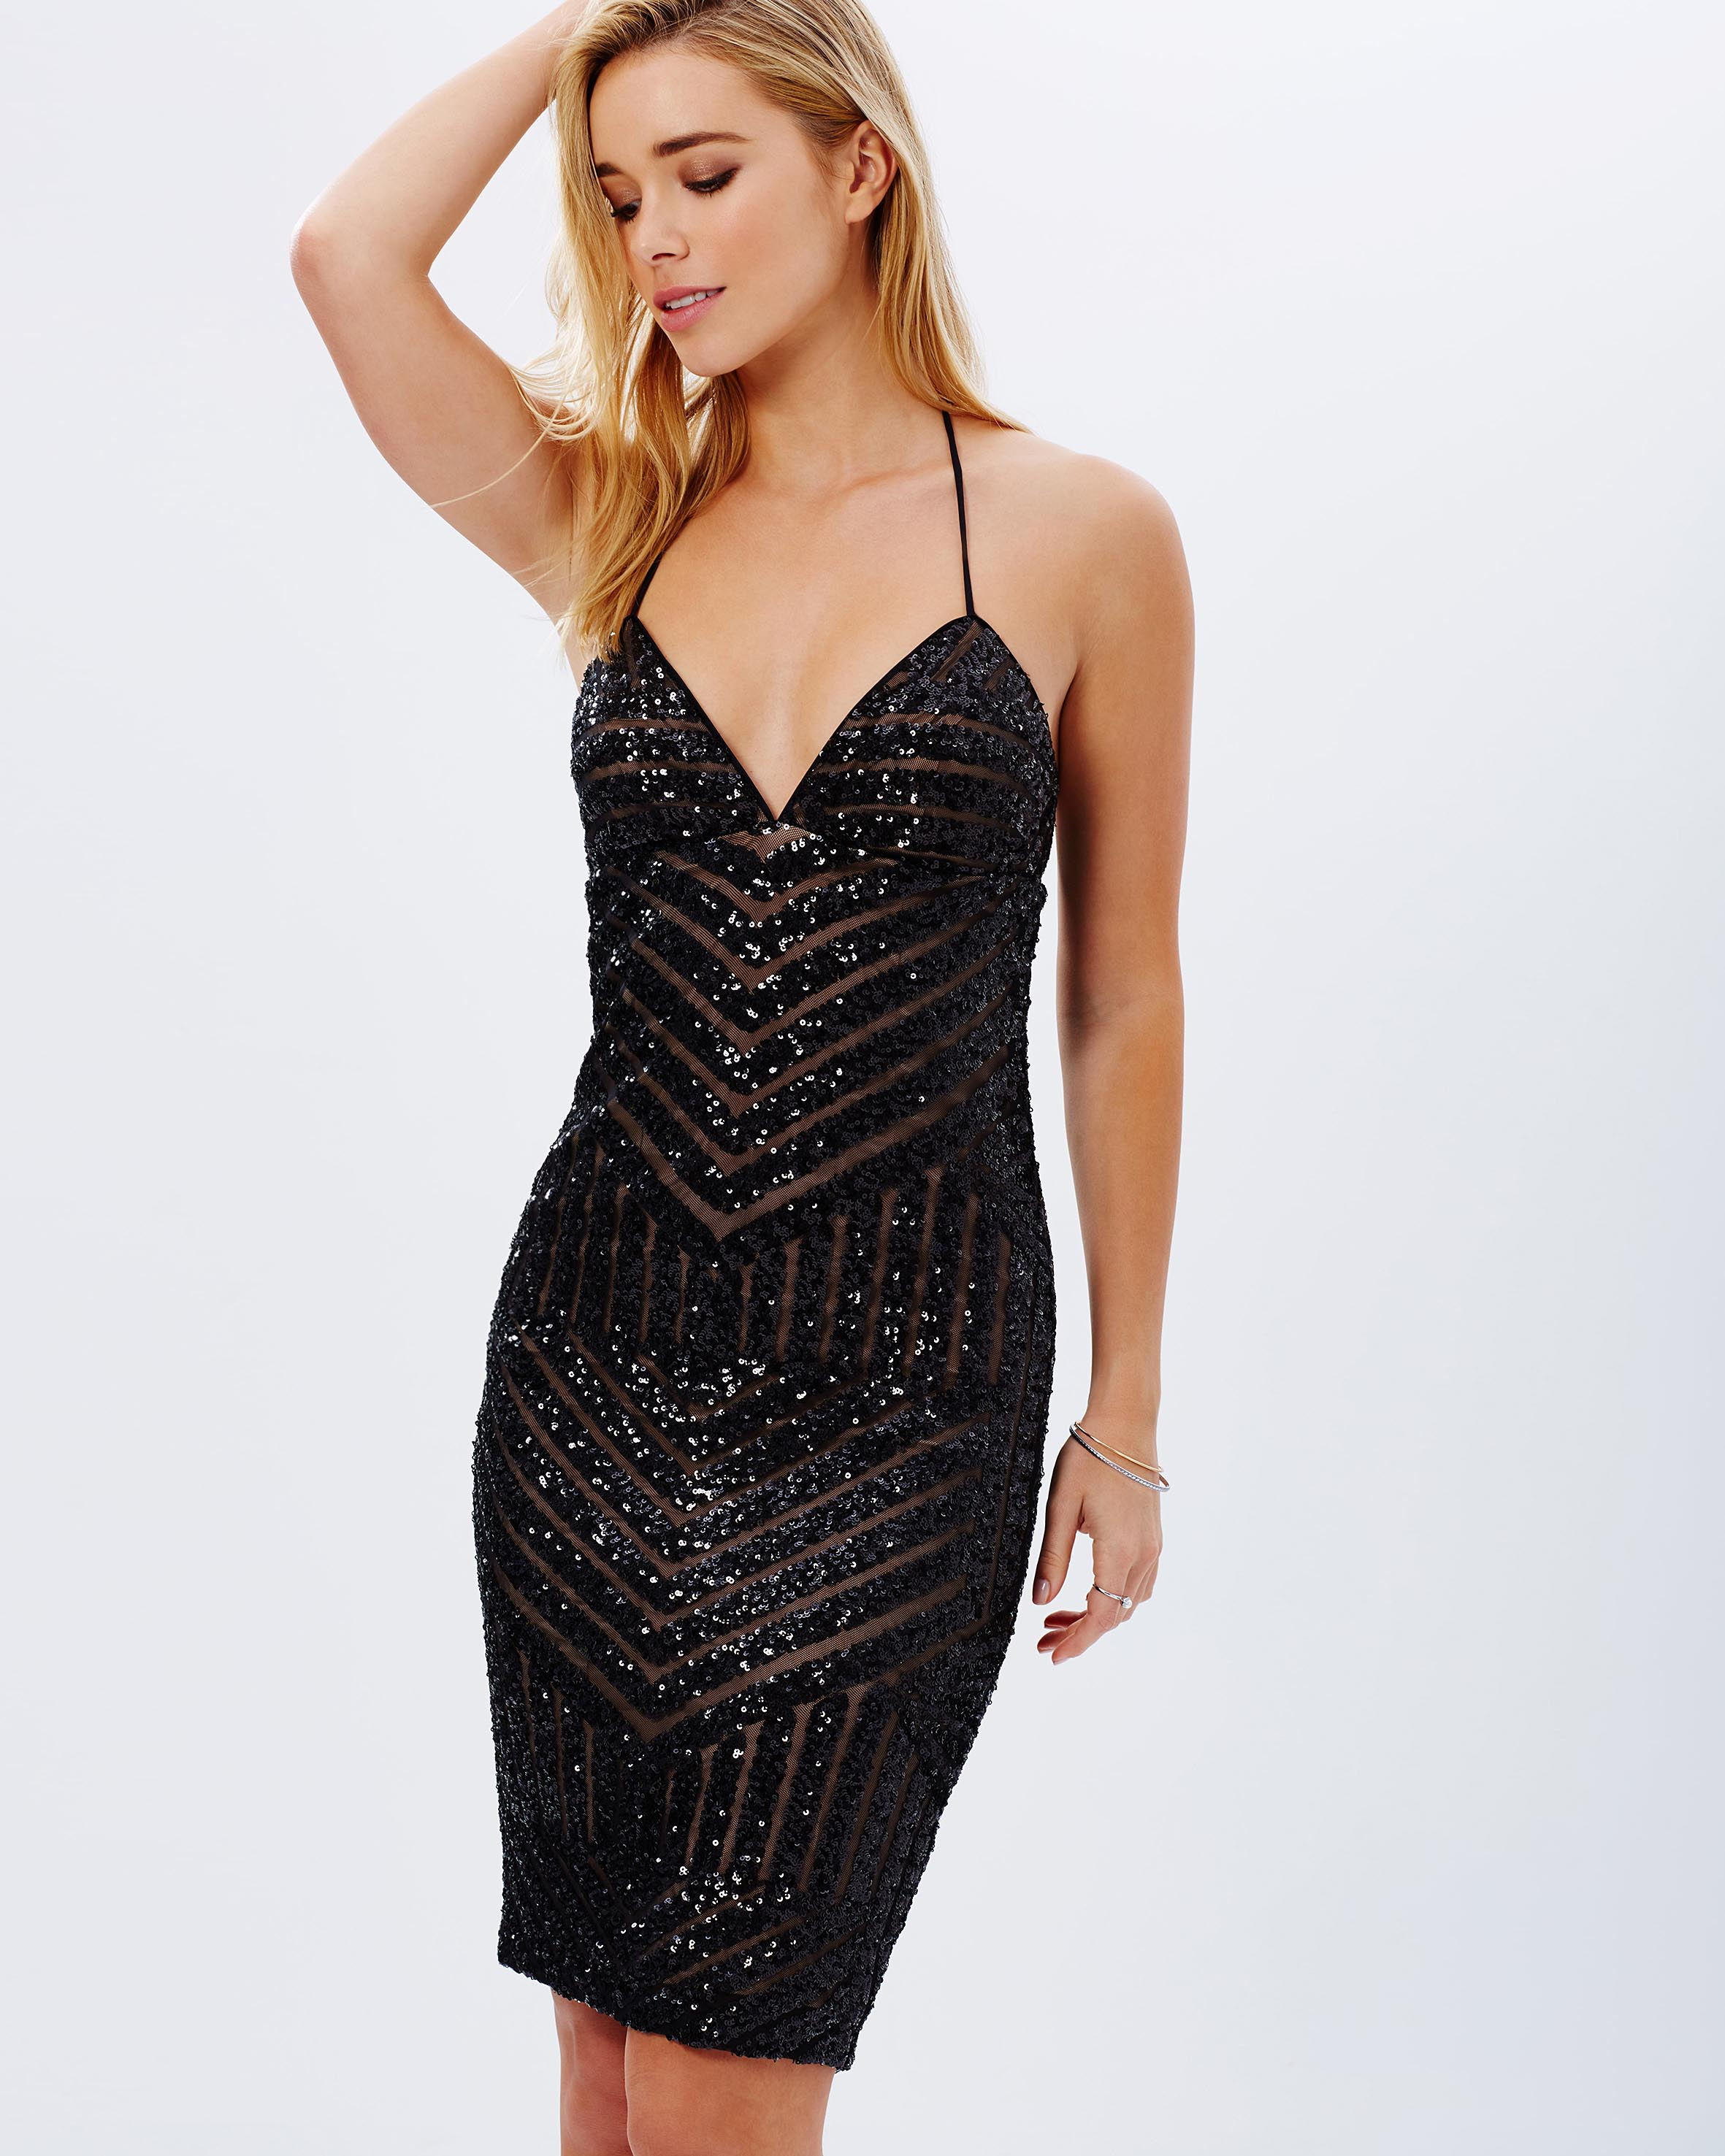 Dress to impress for the hottest event this year, Prom! Find the perfect prom dress at Windsor Store with a huge selection of elegant evening gowns, stunning sequins, little black dresses, and backless beauties in the hottest lengths, cuts and colors! Inspiring and empowering women since